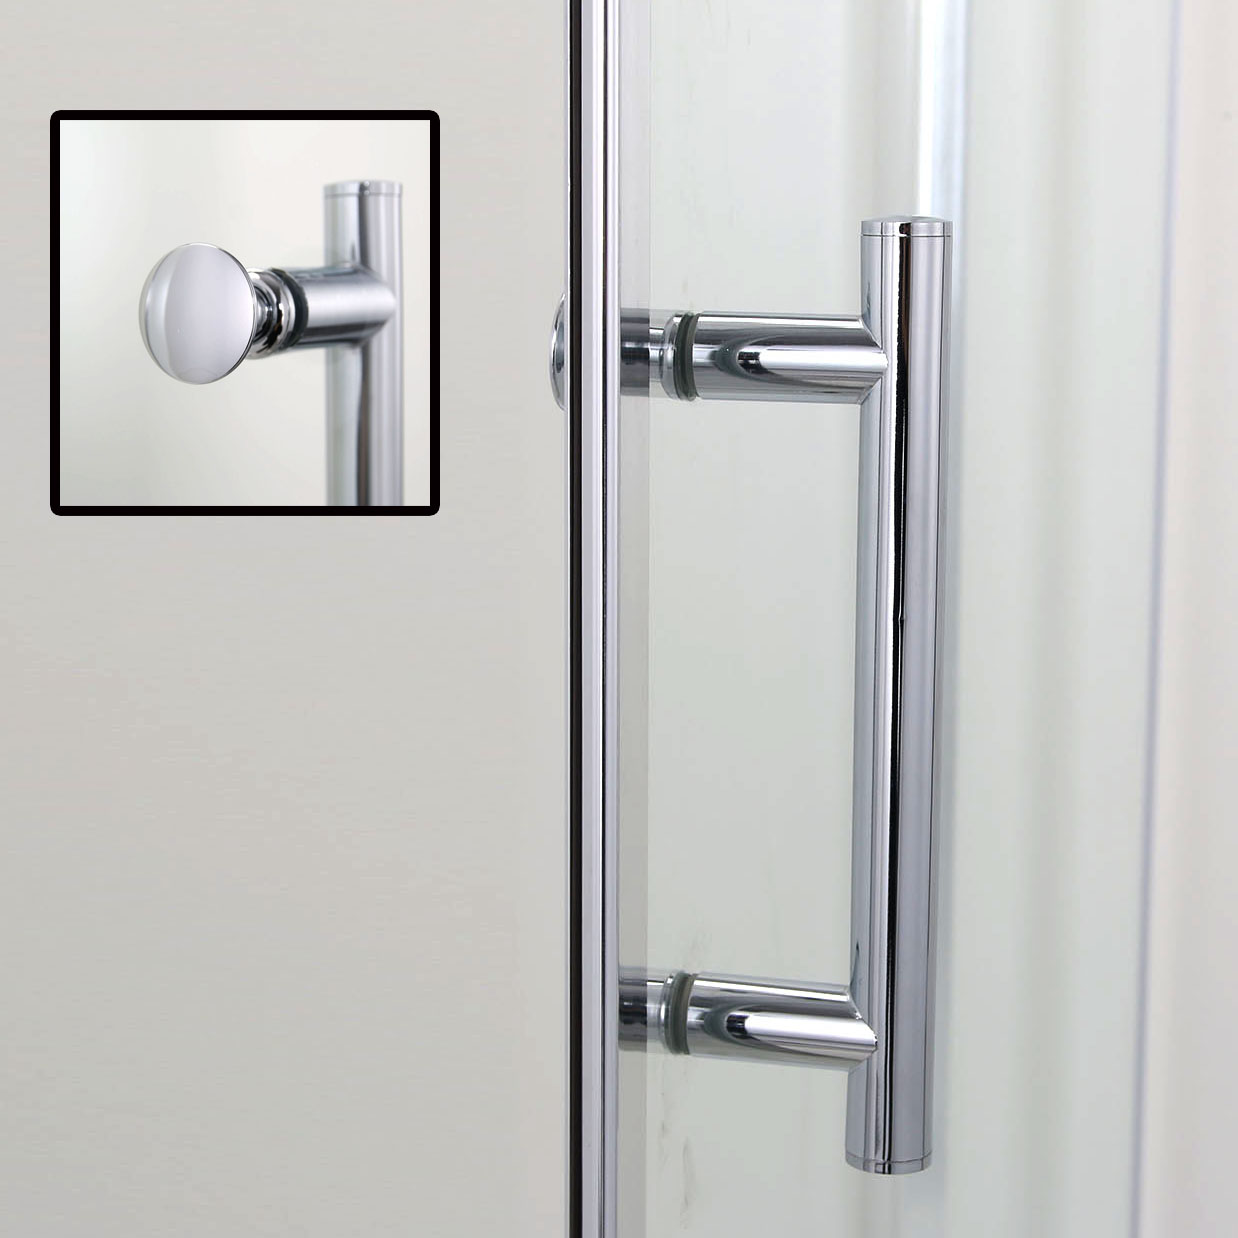 Pivot hinge shower door 1950mm glass enclosure stone tray waste trap ebay - Trap door hinges ...